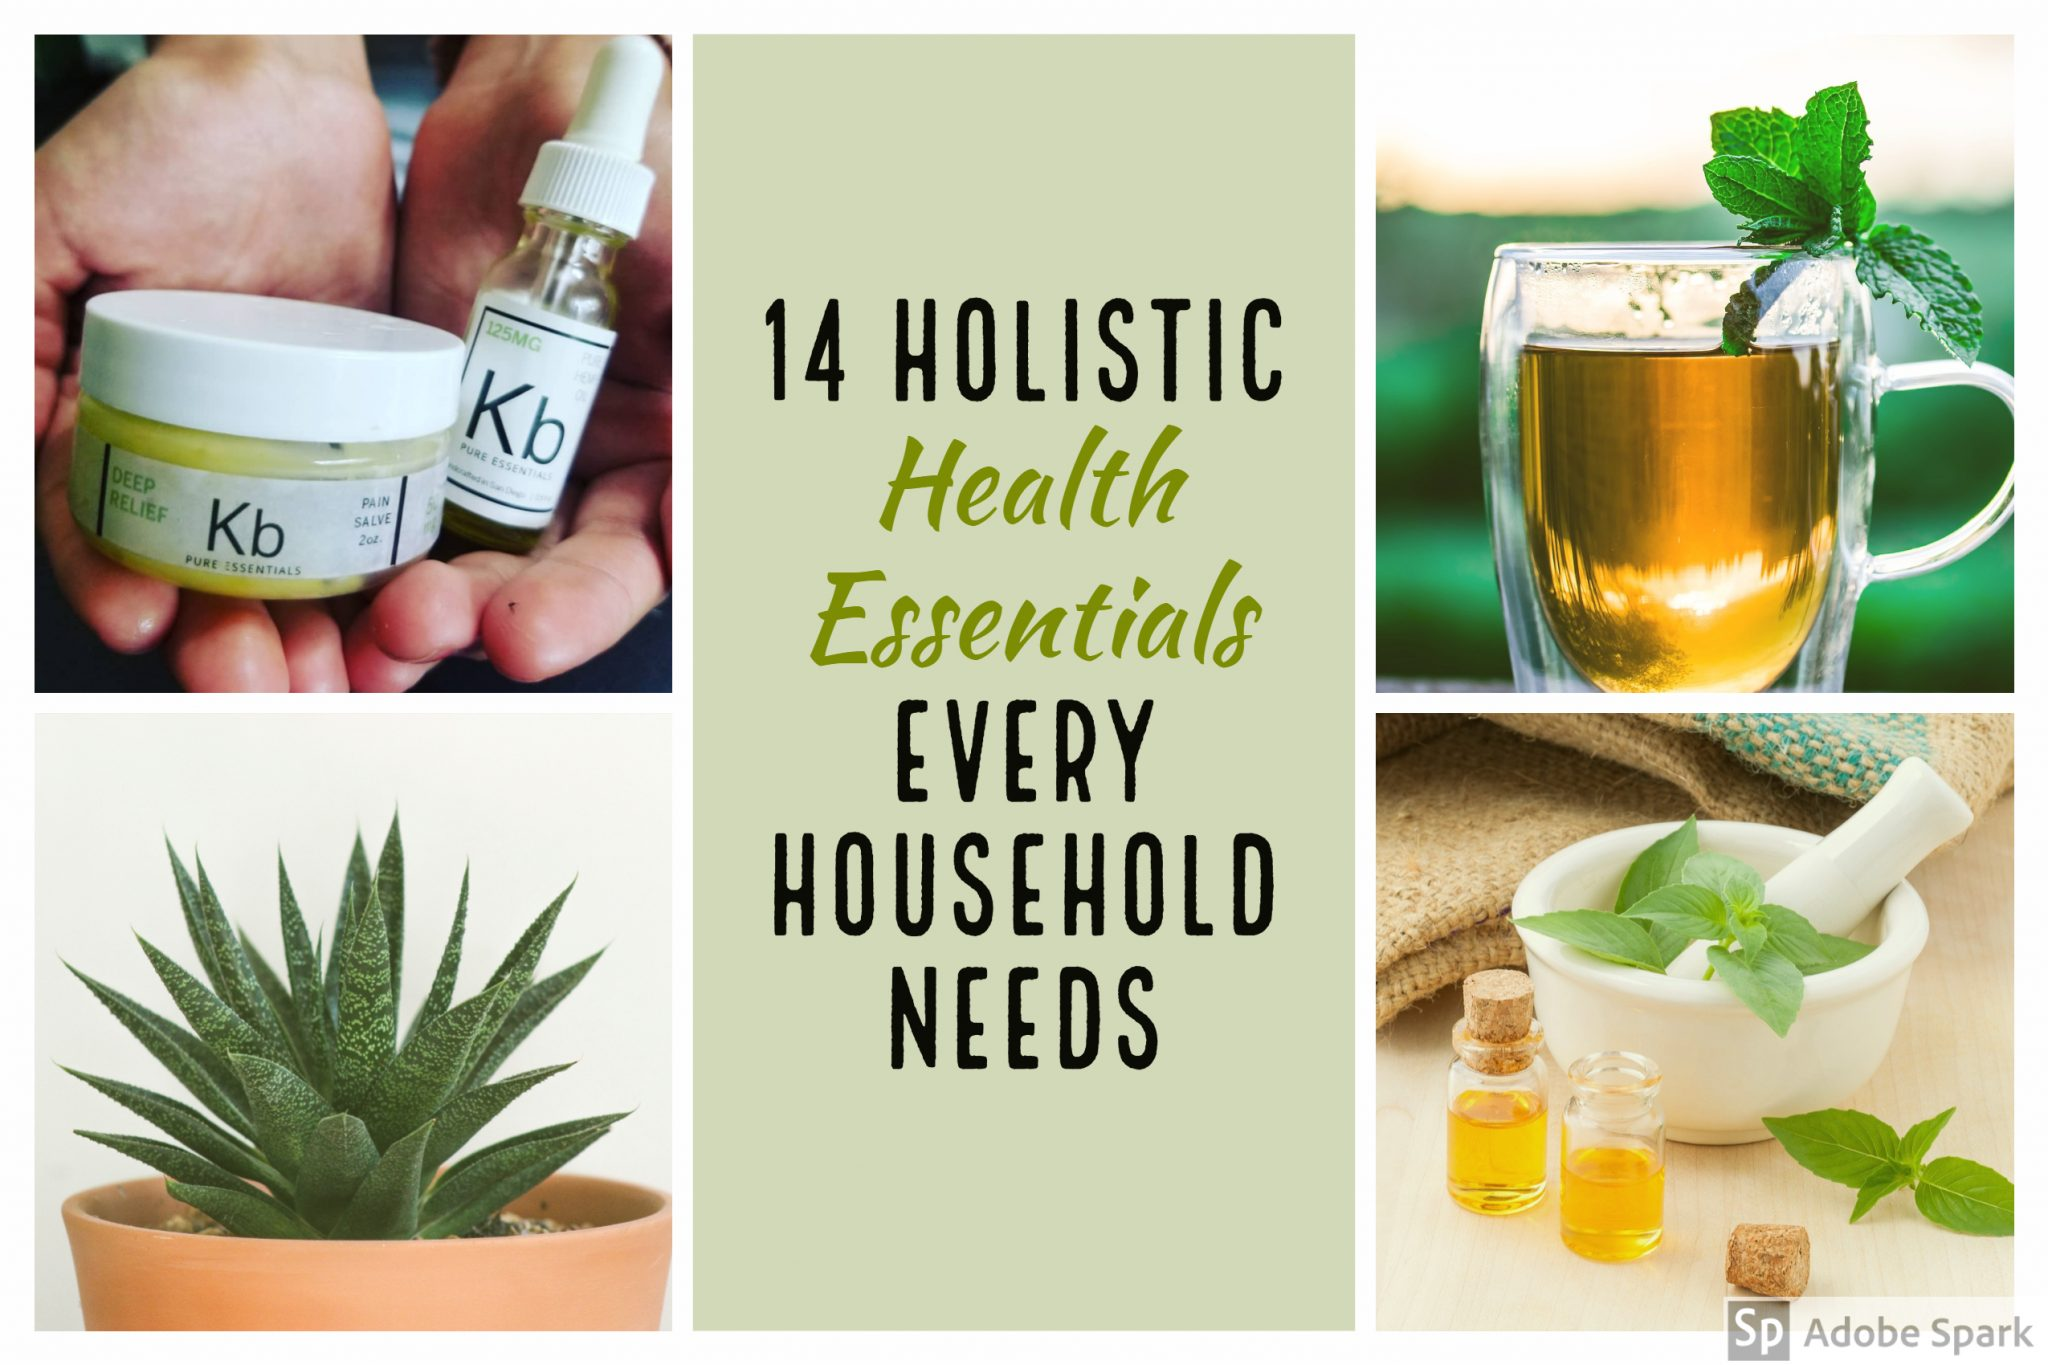 14 Holistic Health Essentials